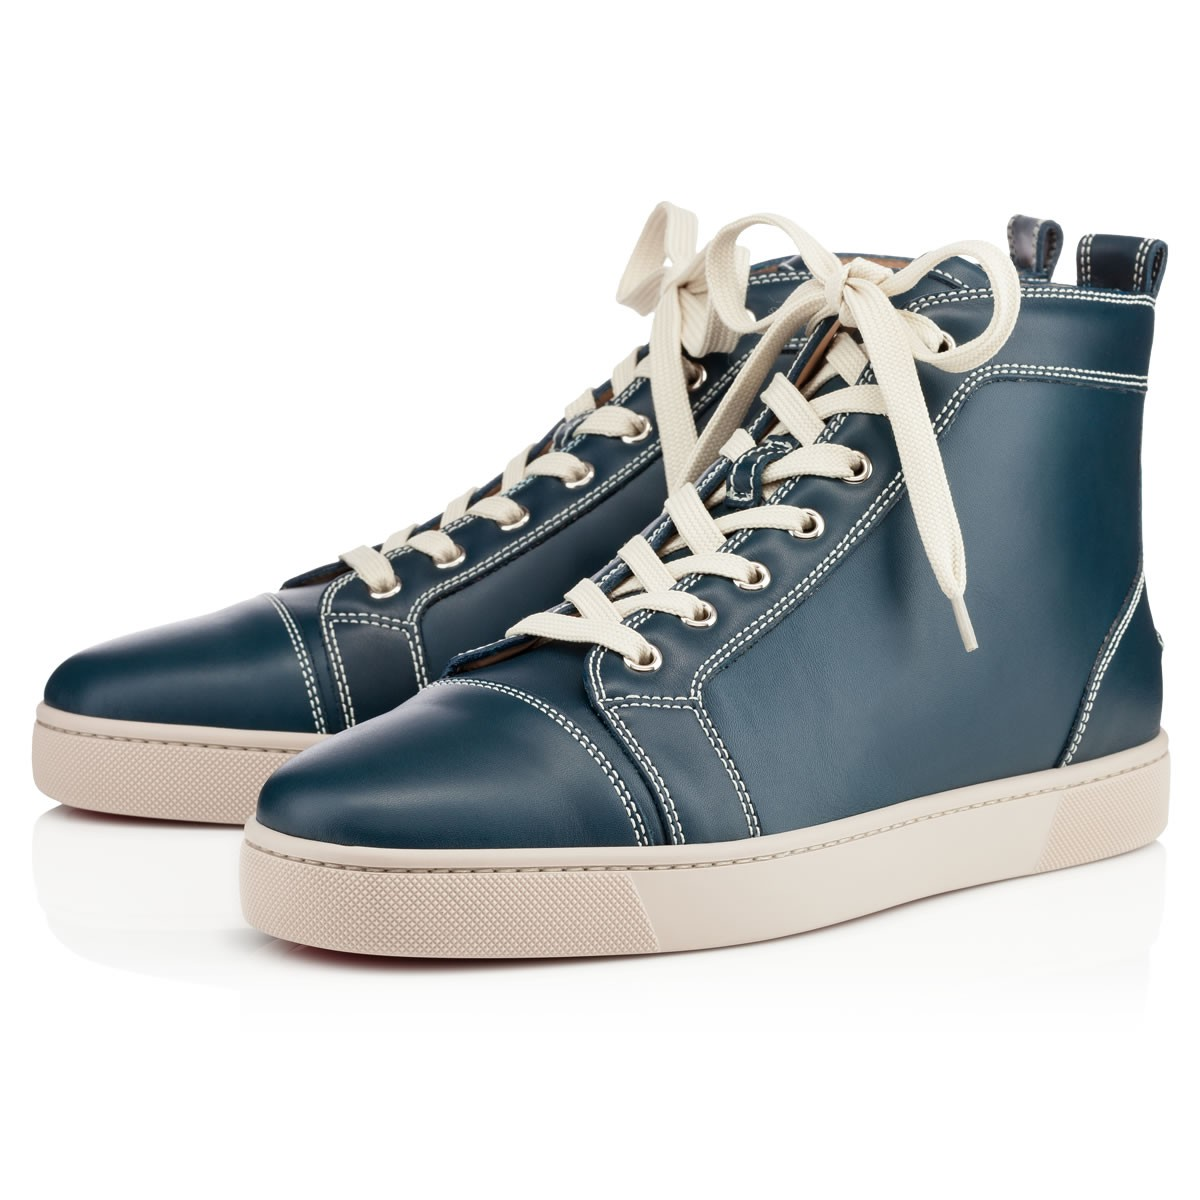 6847cad13e18 Lyst - Christian Louboutin Louis Mens Flat in Blue for Men